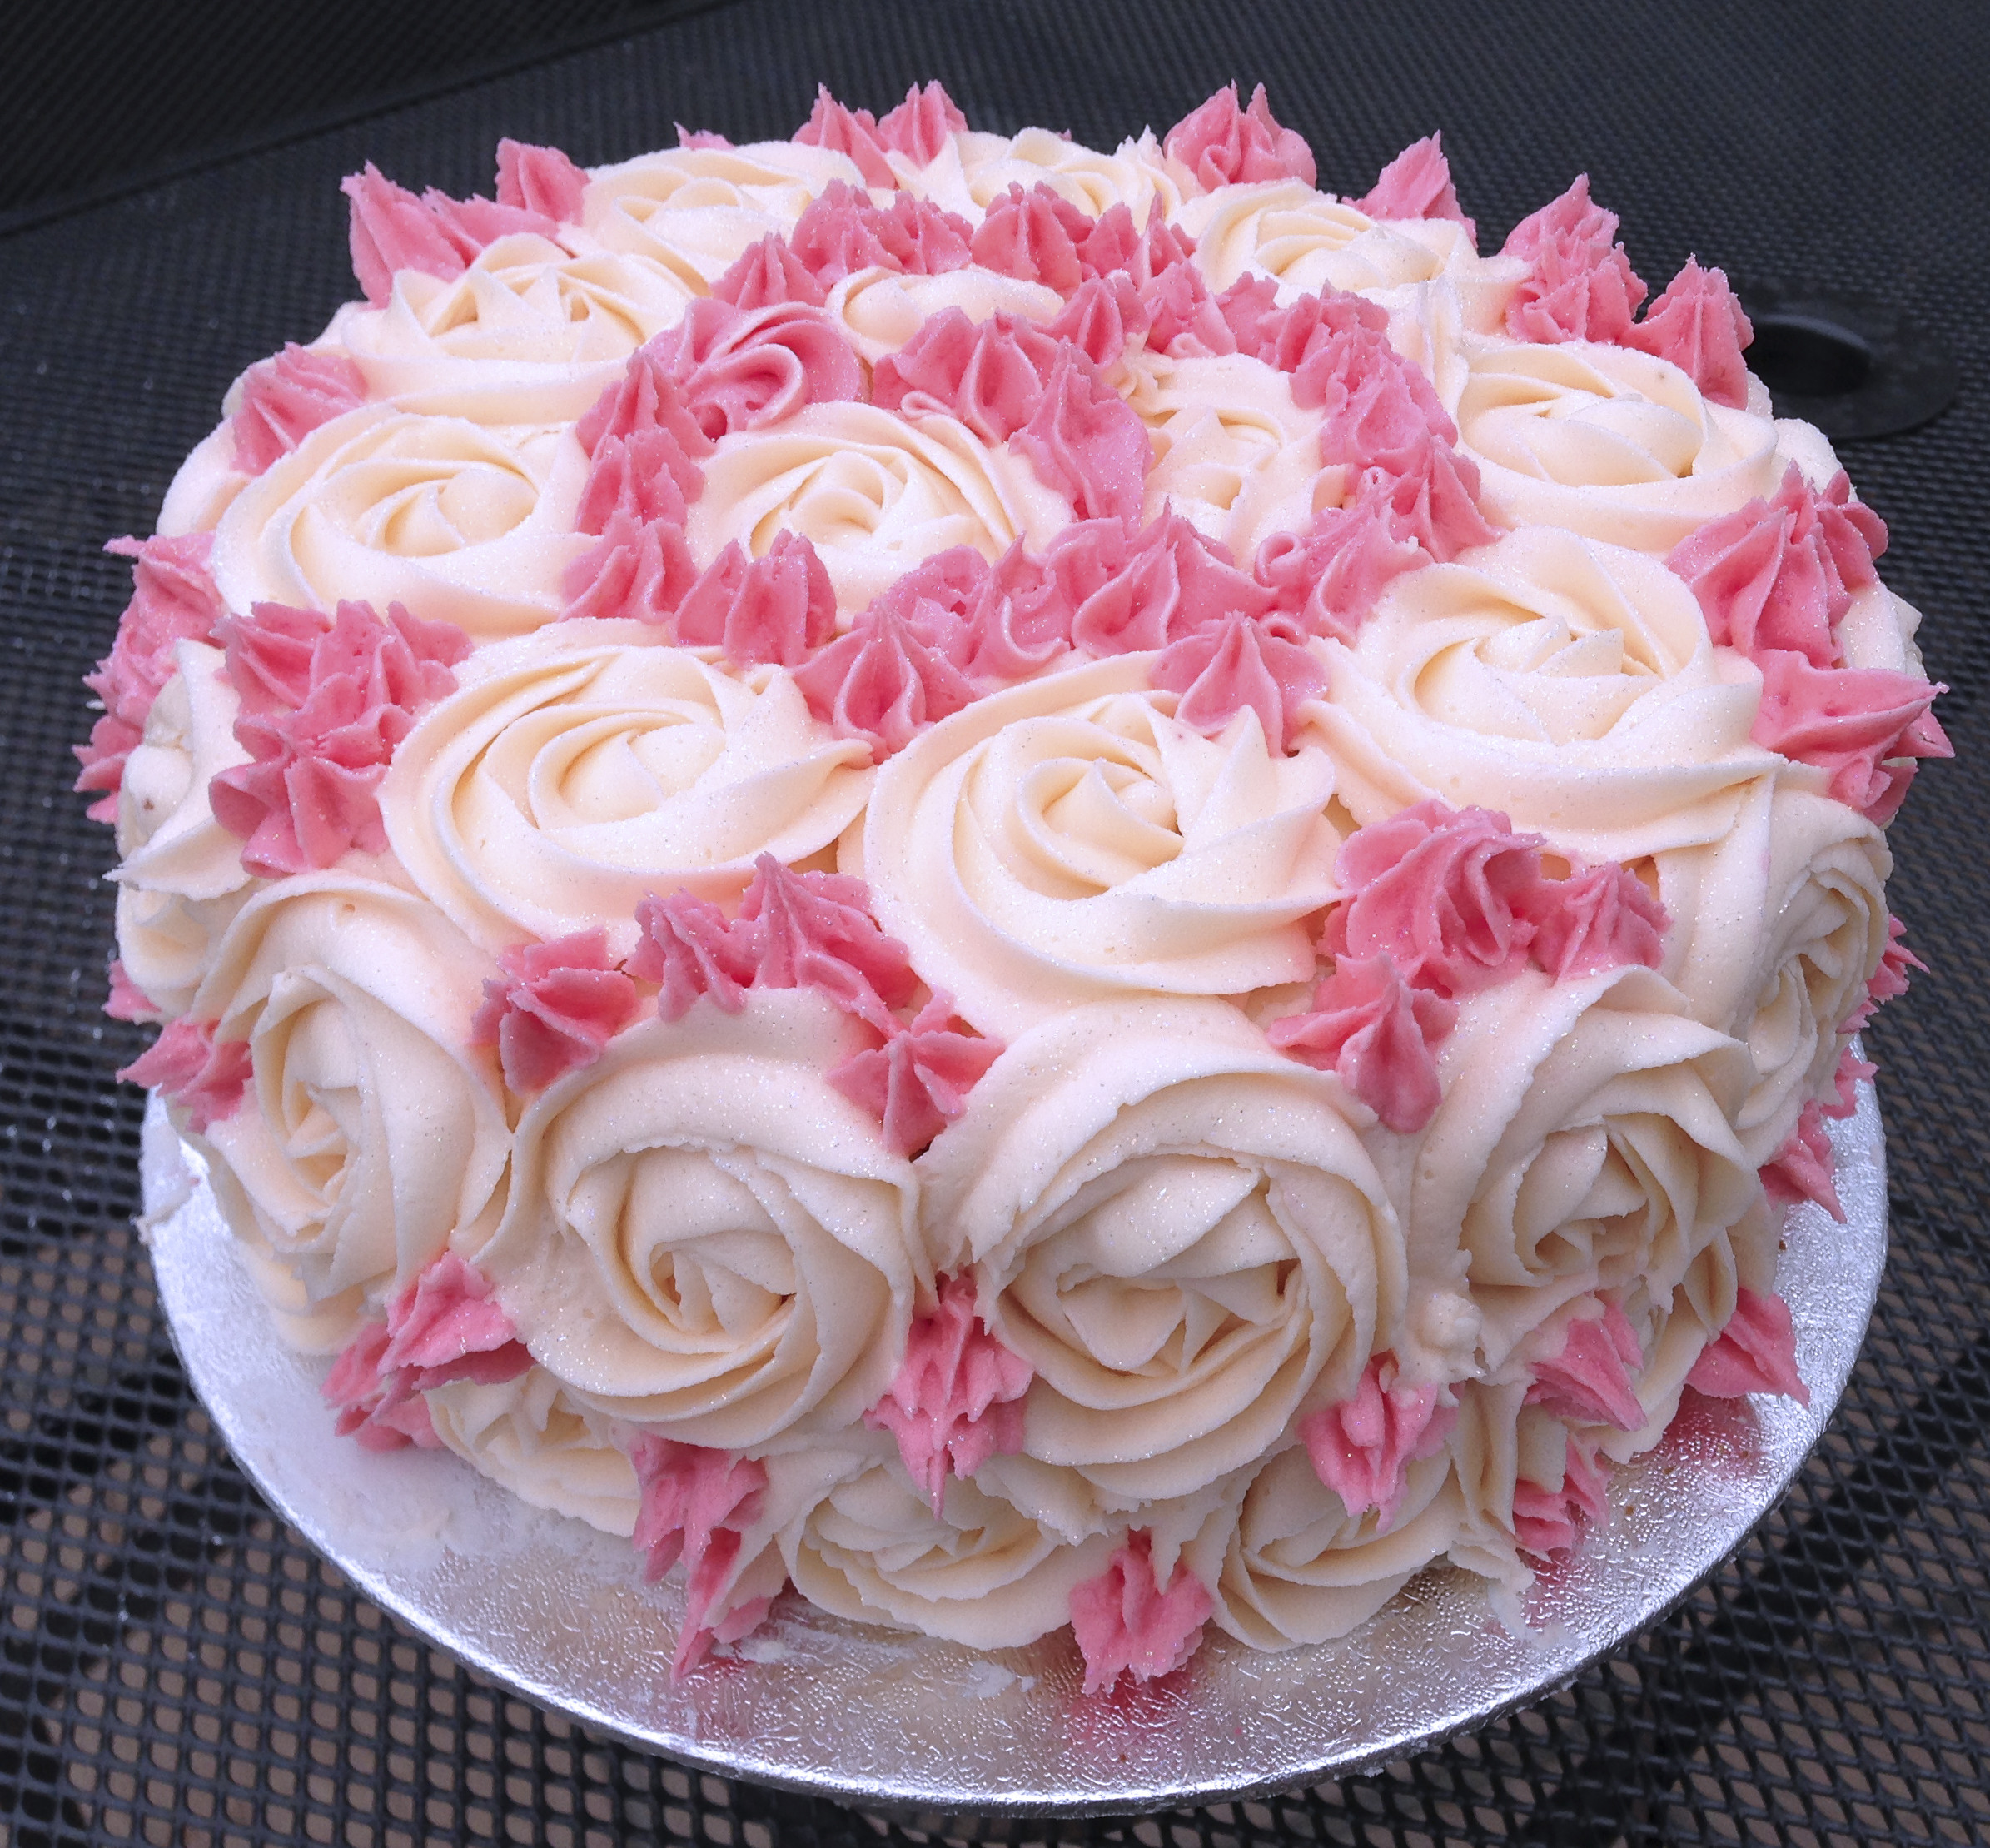 Best ideas about Rose Birthday Cake . Save or Pin Rose Cake Now.